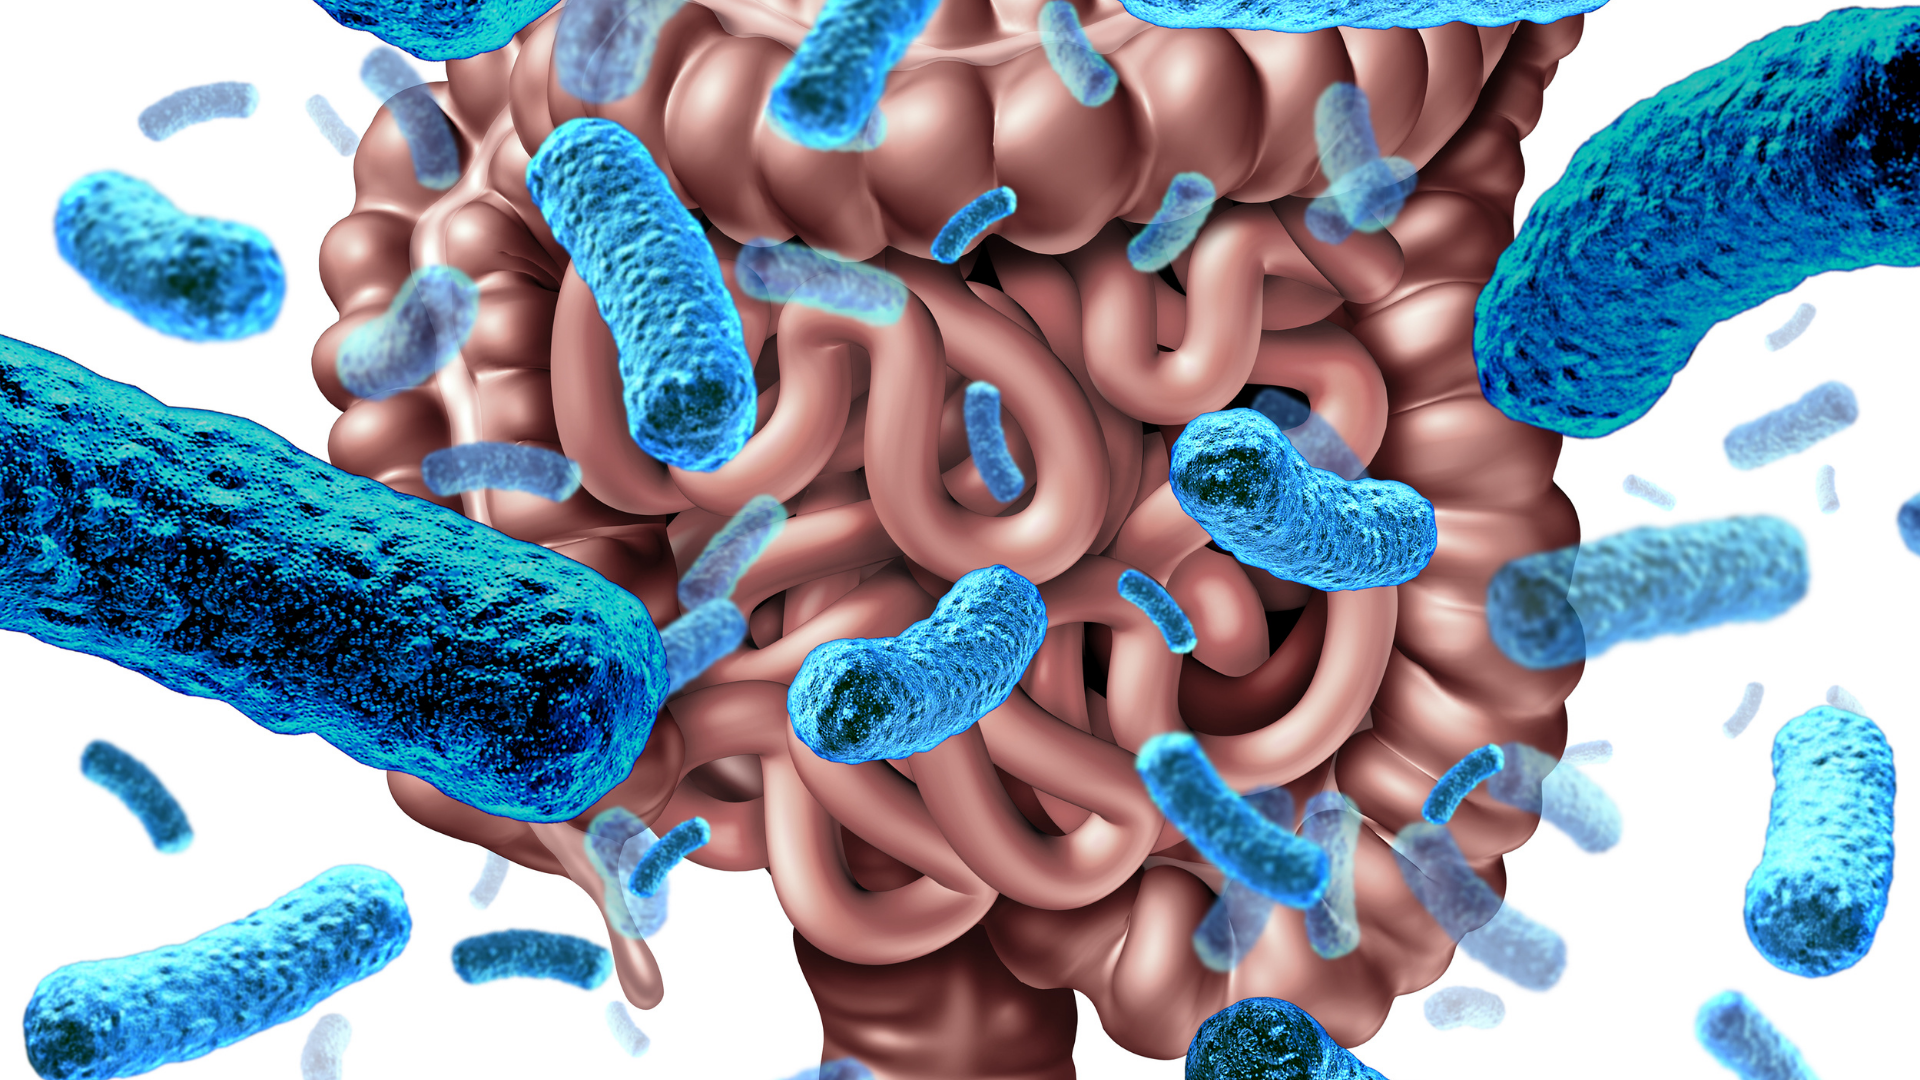 Using Probiotics to Improve Gut-Brain Connection - An Interview with Dr. Michael Ruscio